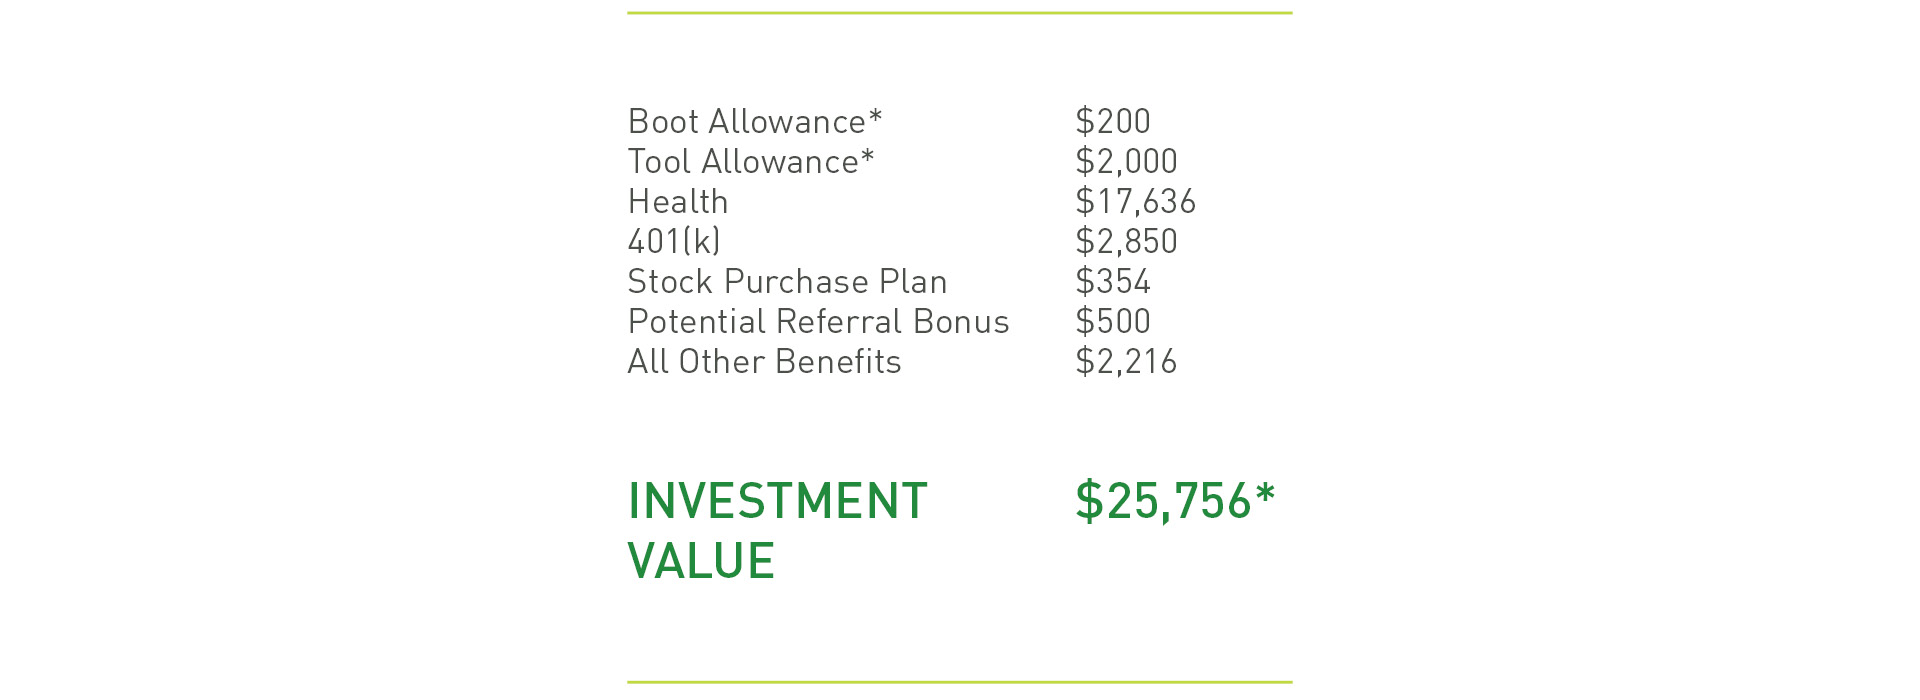 WM's Investment. Boot Allowance: $200. Tool Allowance: $2,000. Health: $17,636. 401(k): $2,850. Stock Purchase Plan: $354. Potential Referral Bonus: $500. All other benefits: $2,216. Investment Value: $25,756*.  *The figures presented in this summary are hypothetical and presented for illustrative purposes only, and are based off of averages and the terms of WM's benefits as currently in effect. Your individual circumstances may vary, and WM's benefits offerings are subject to change and may vary by site. This summary is not an offer of employment or a guarantee of any specific term or condition of employment.